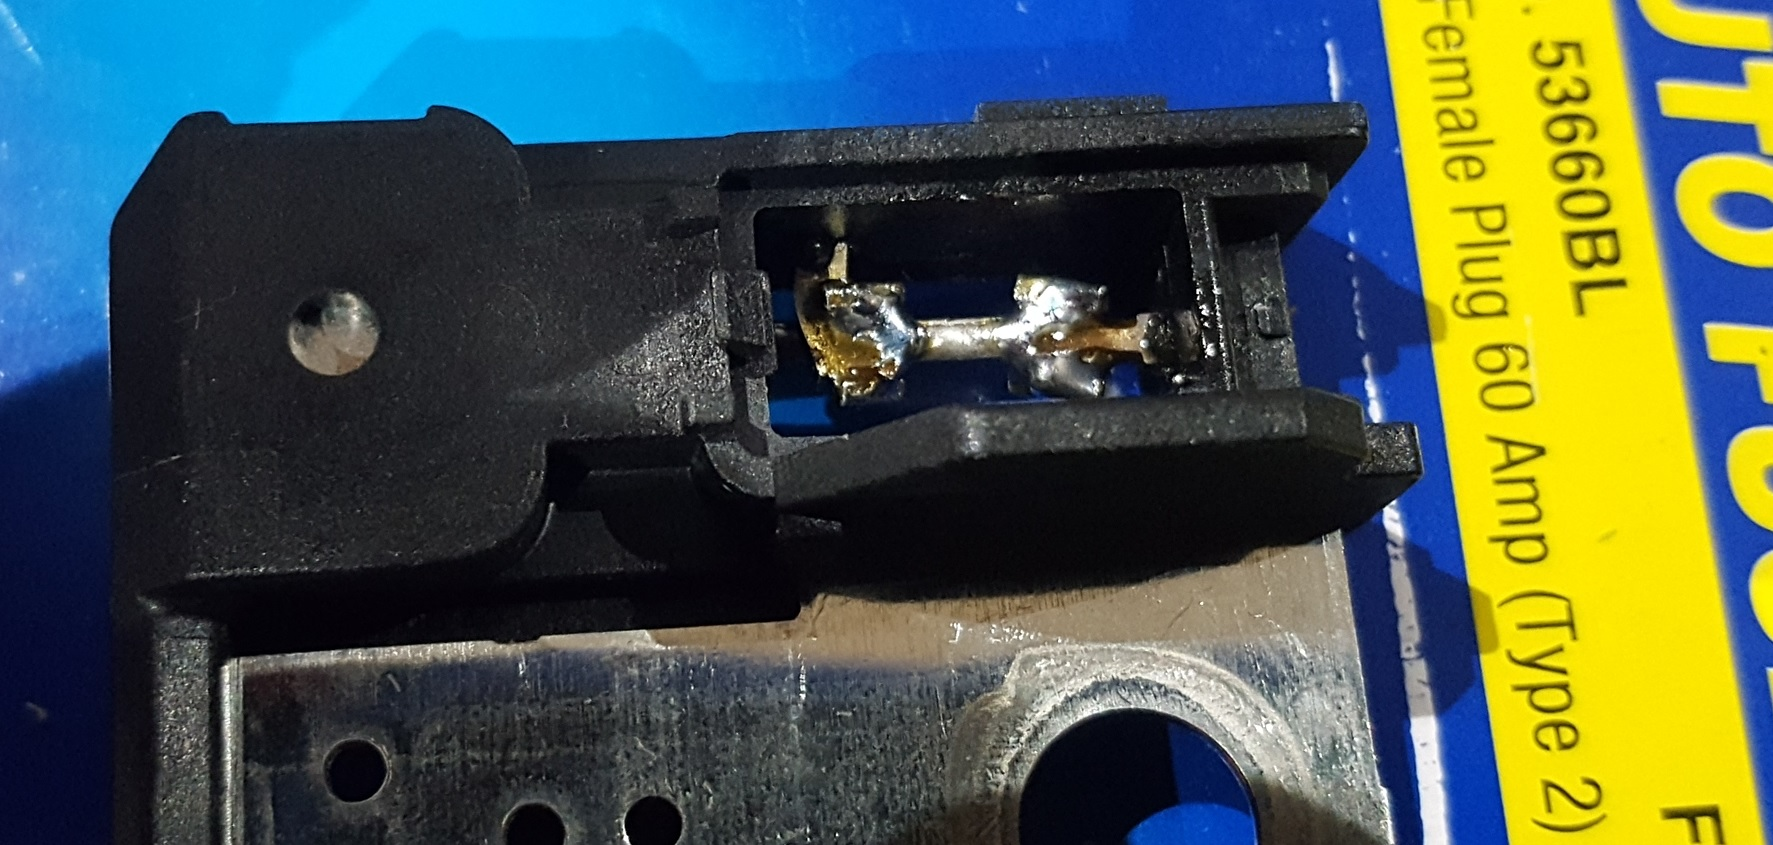 7 New fusible link Soldered into Battery terminal from bottom 20190202_133933.jpg